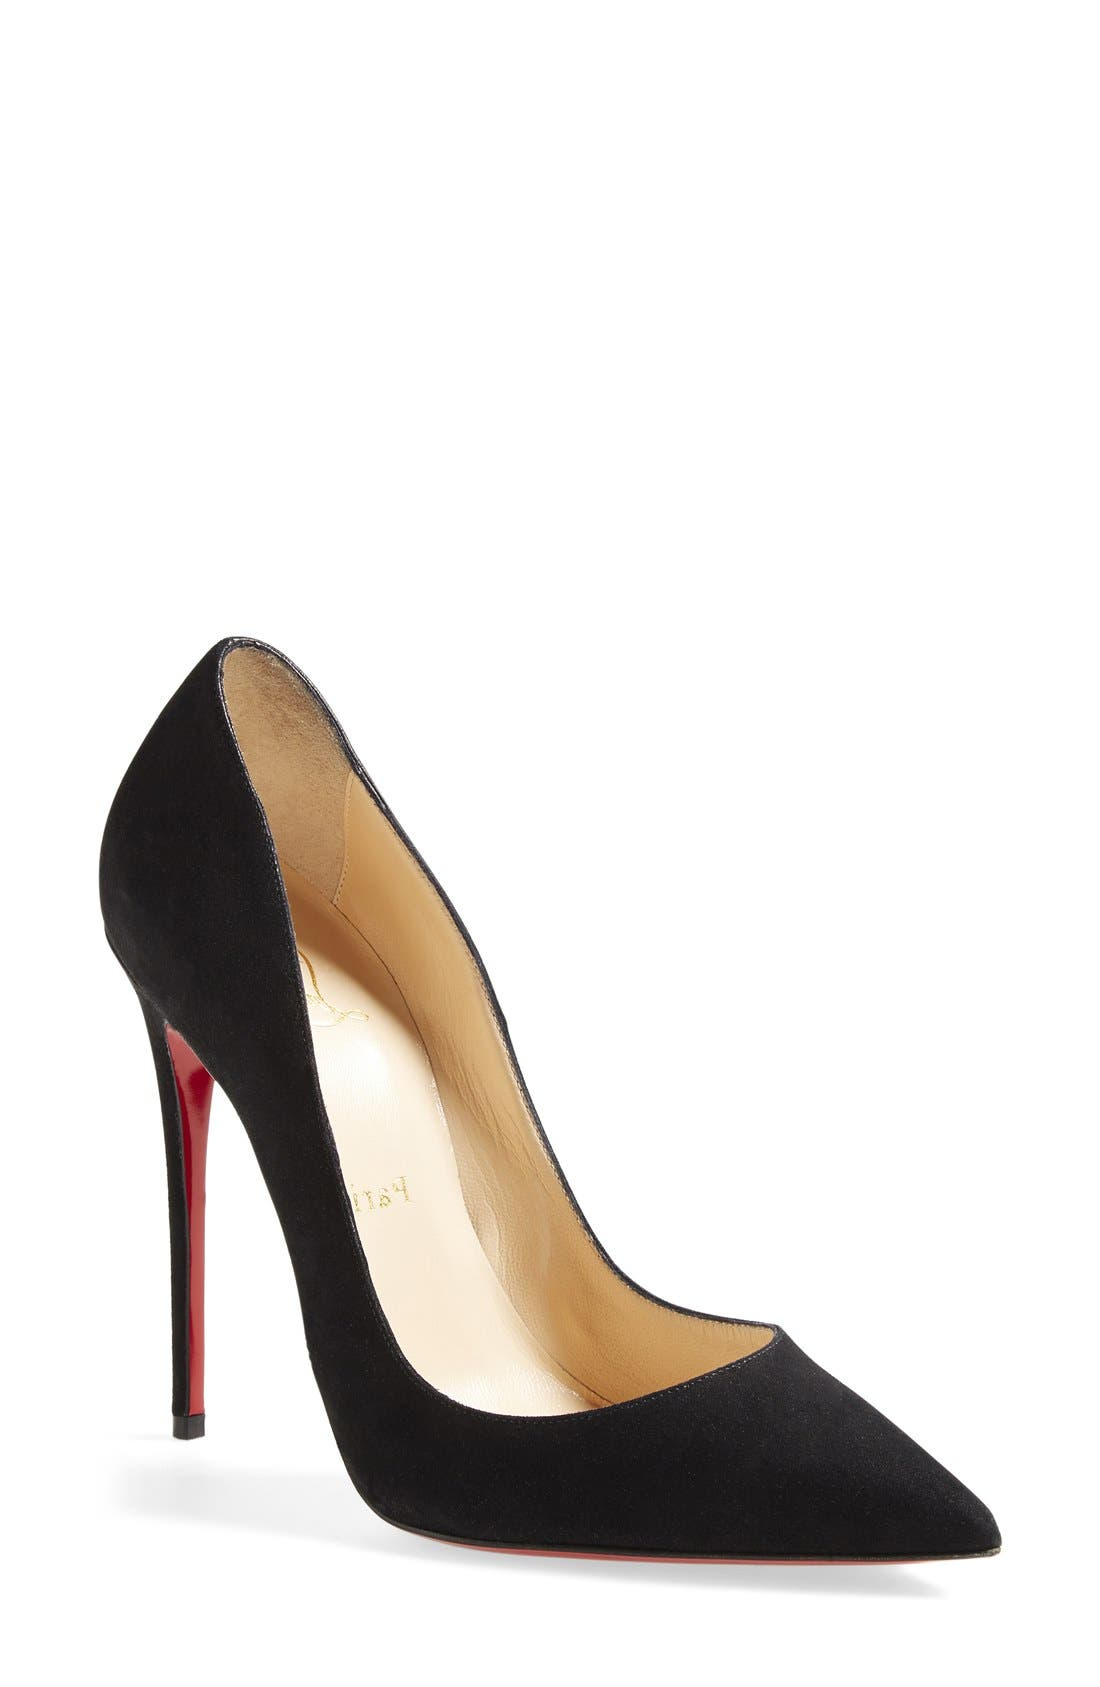 Alternate Image 1 Selected - Christian Louboutin 'So Kate' Pointy Toe Suede Pump